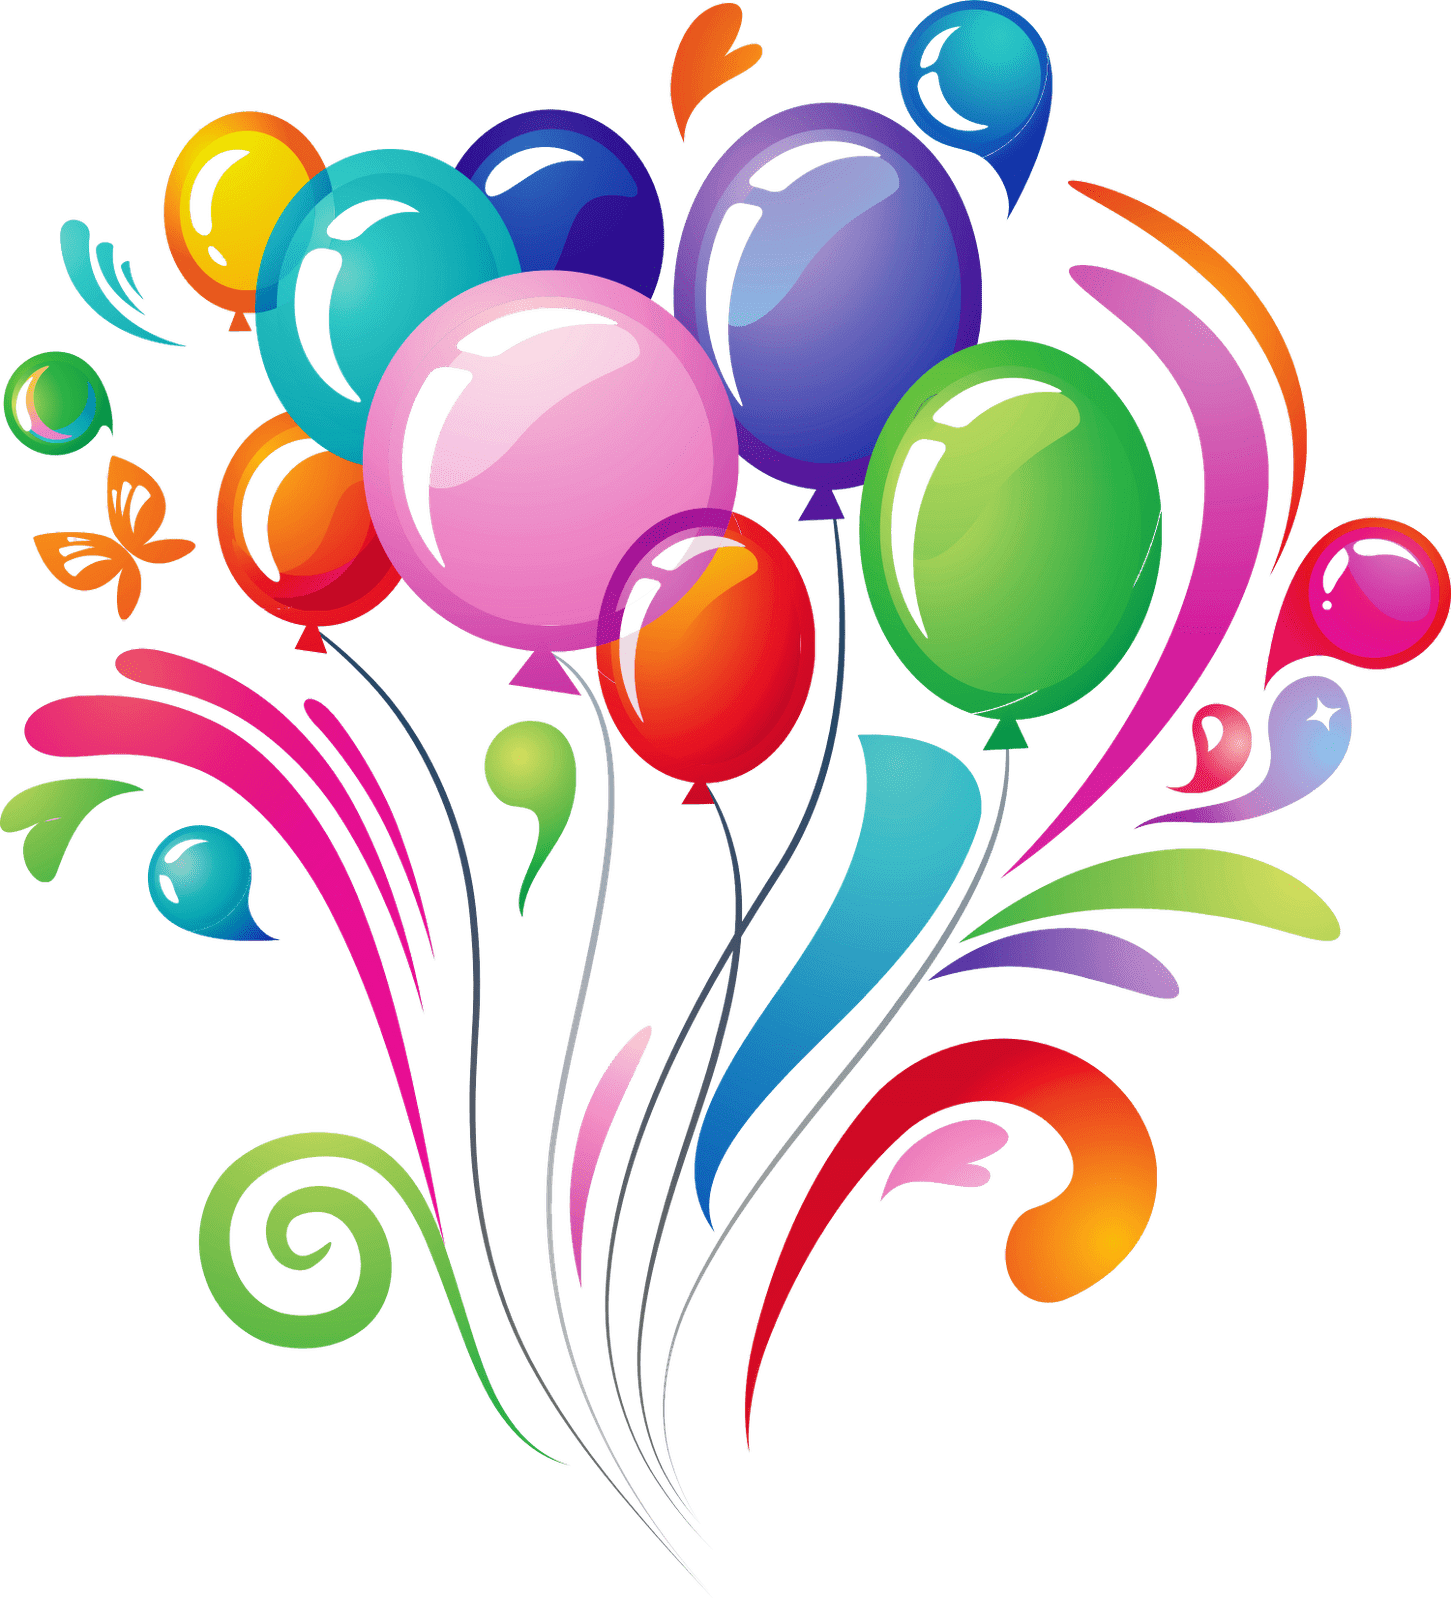 Explosions clipart balloon Balloons Explosion StickPNG Explosion PNG